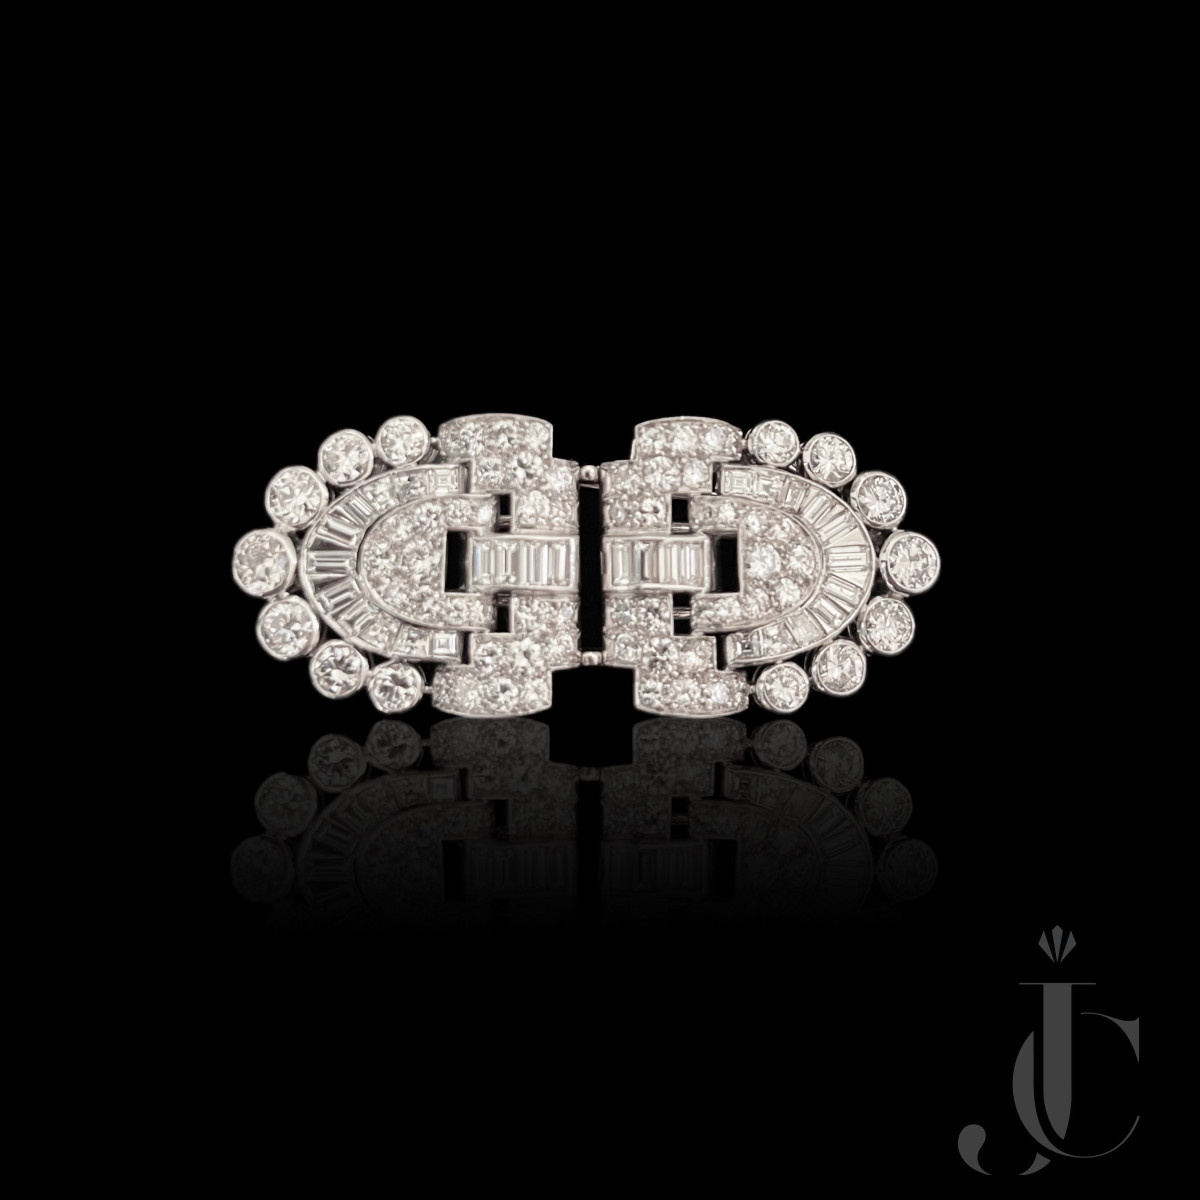 Platinum Art Deco Diamond Double Clips Brooch, French